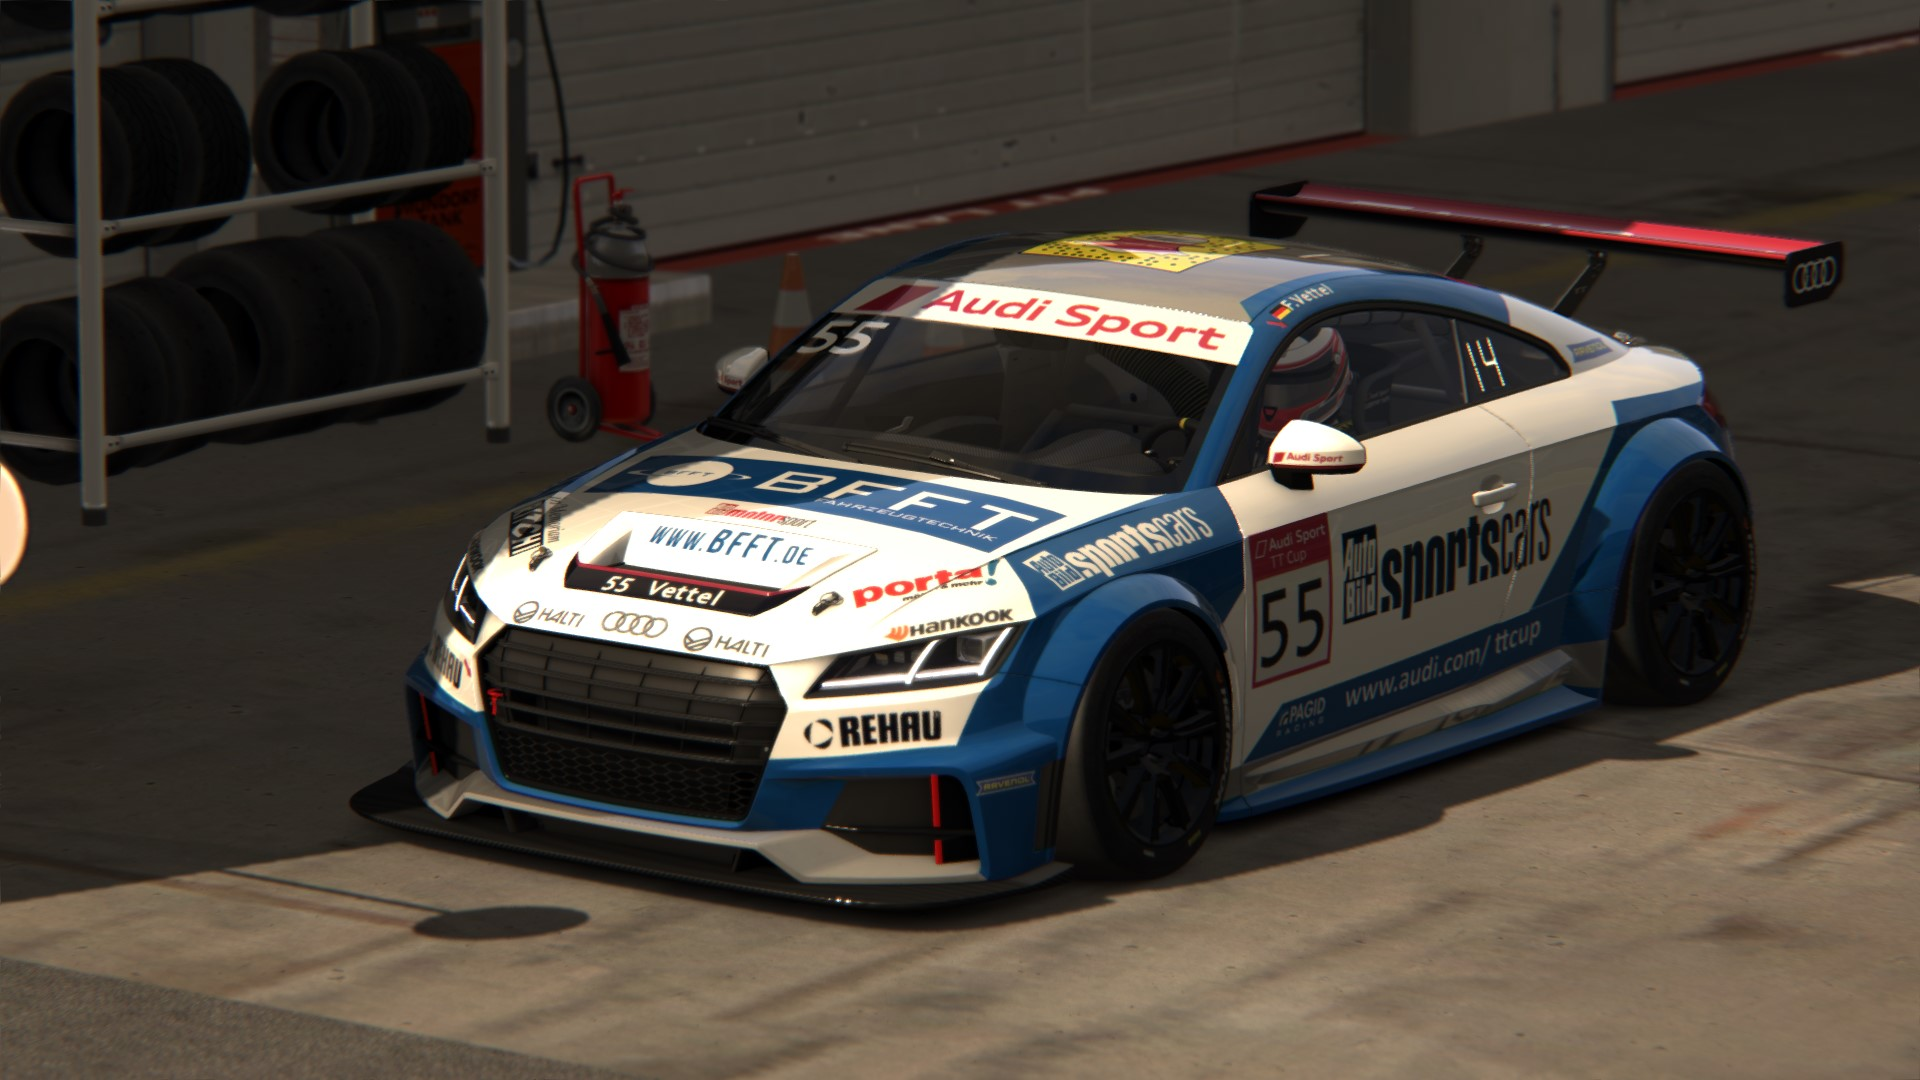 Screenshot_ks_audi_tt_cup_ks_nurburgring_9-6-117-20-38-46.jpg